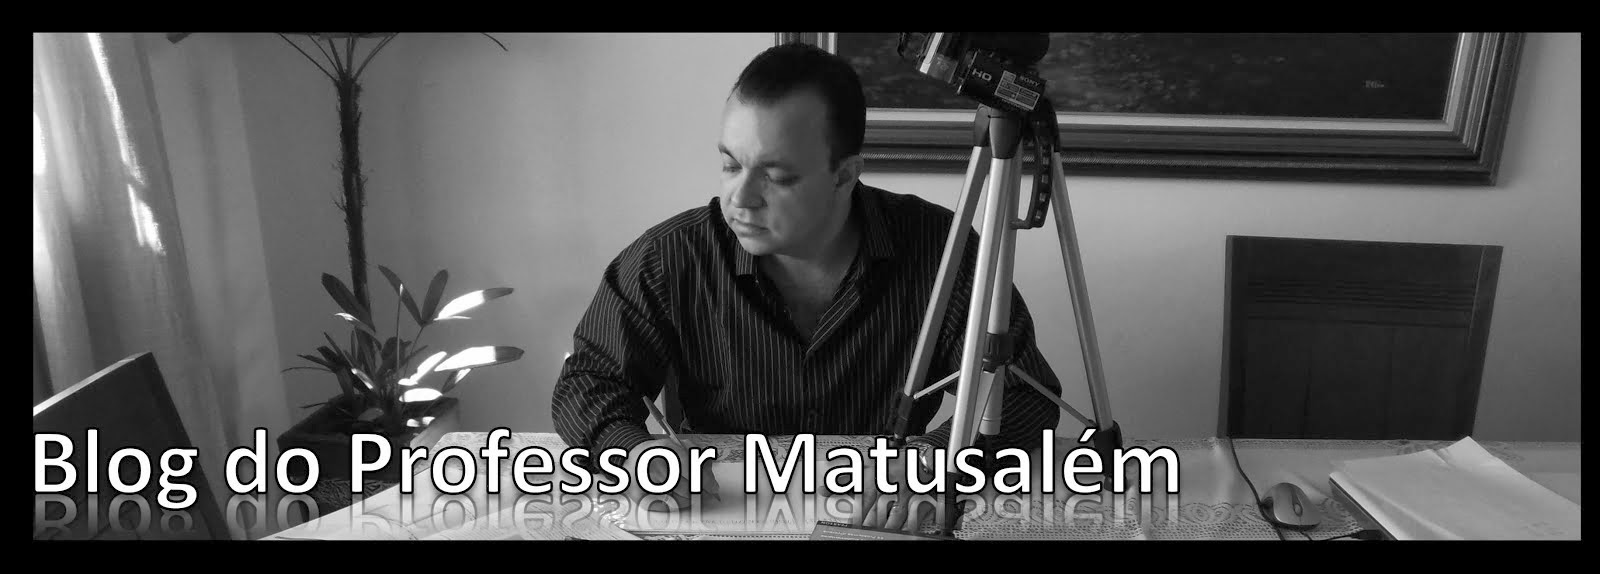 Blog do Professor Matusalém